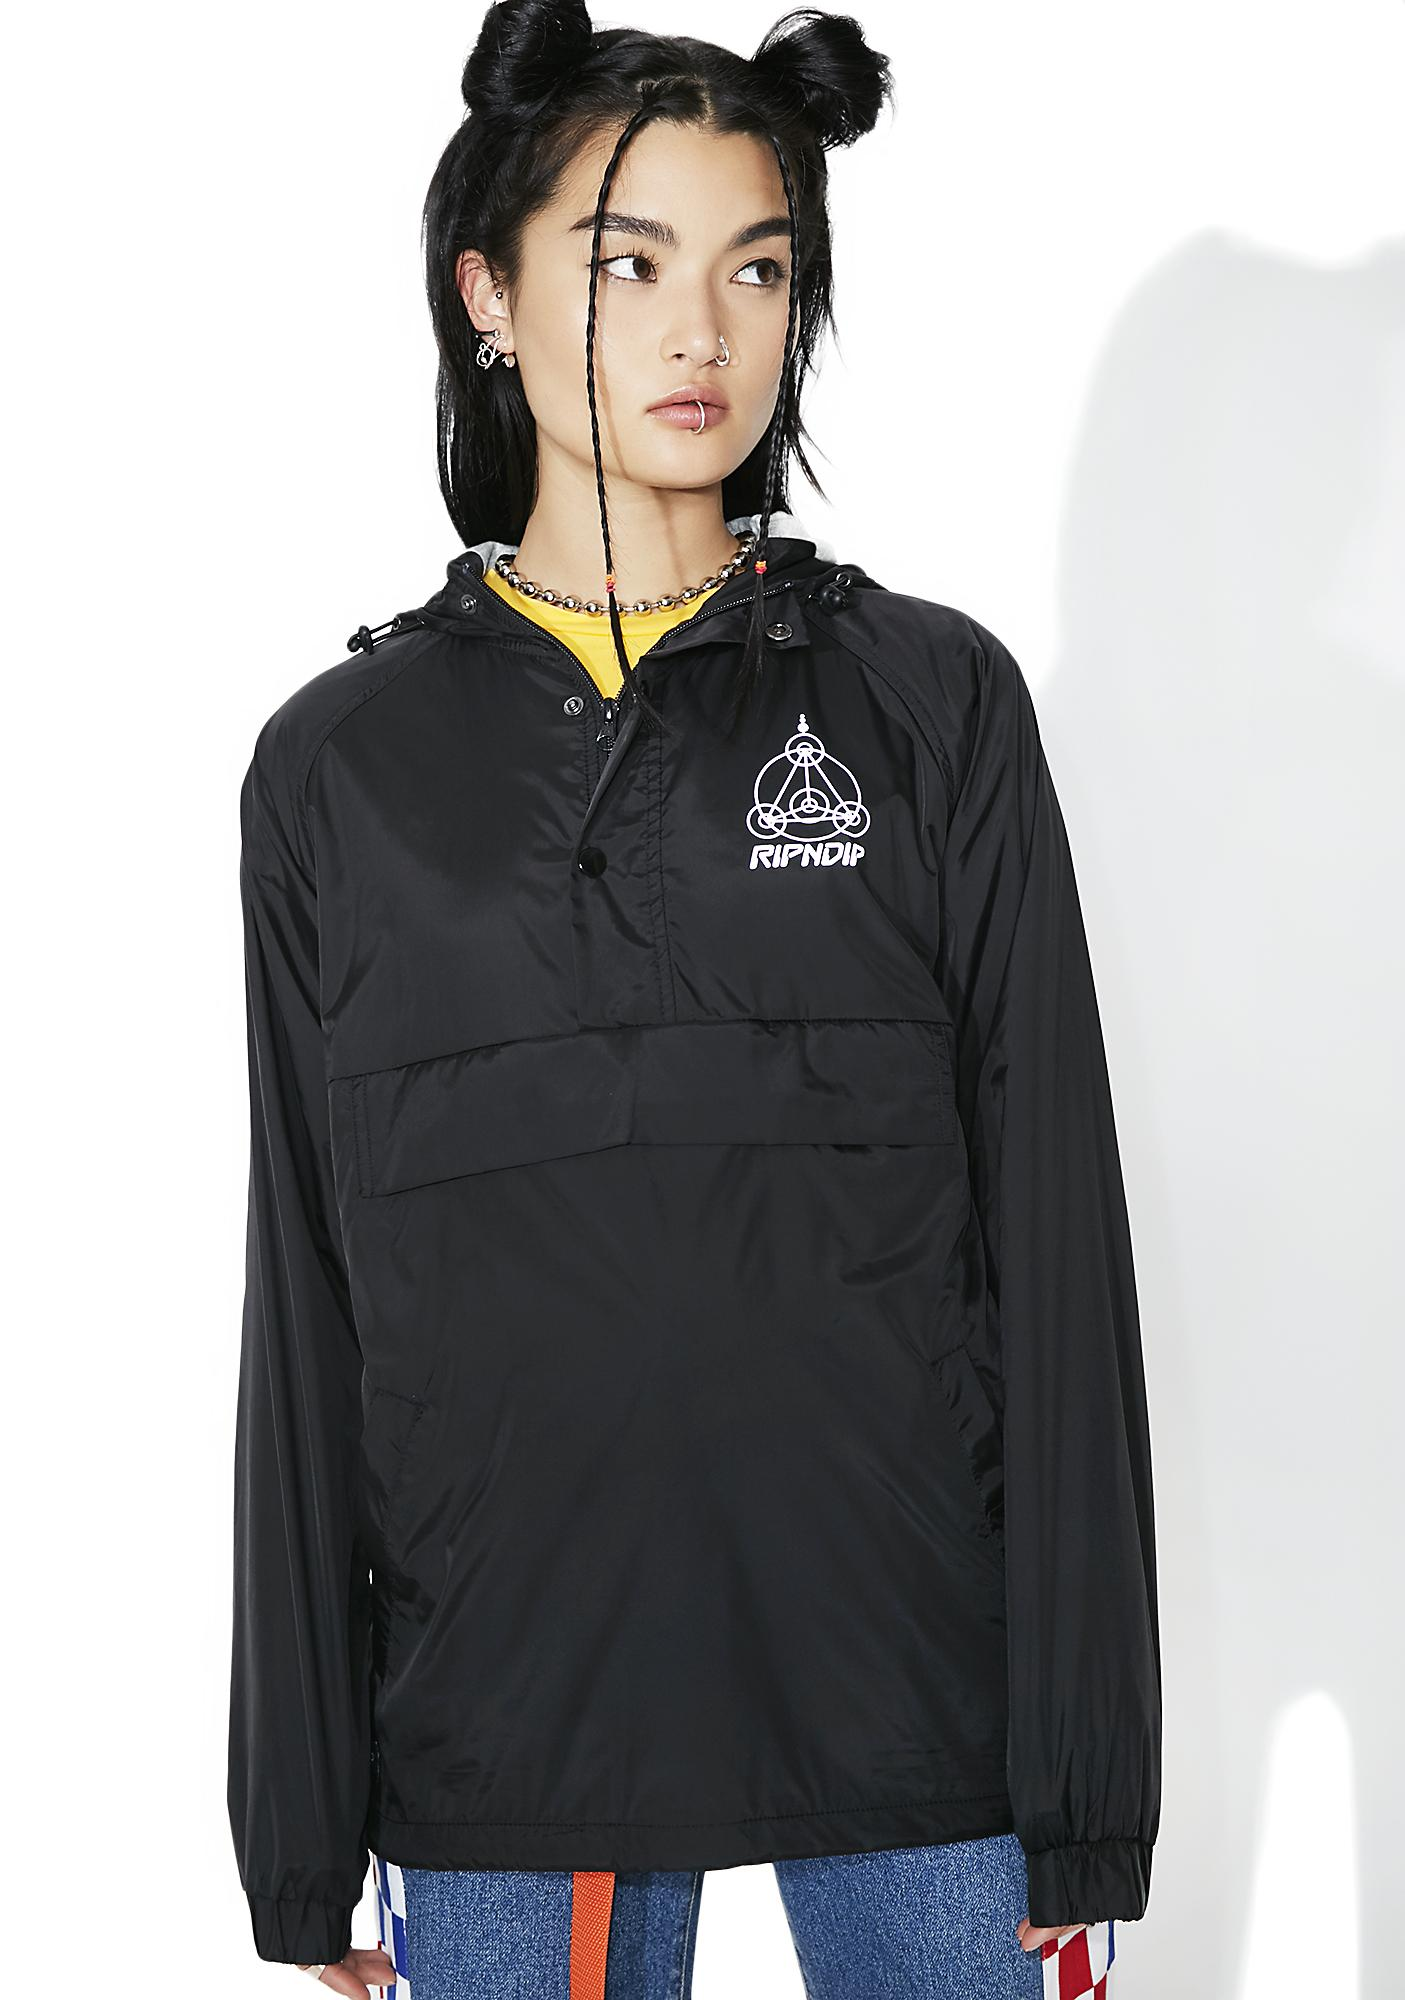 RIPNDIP Crop Circles Reflective Jacket